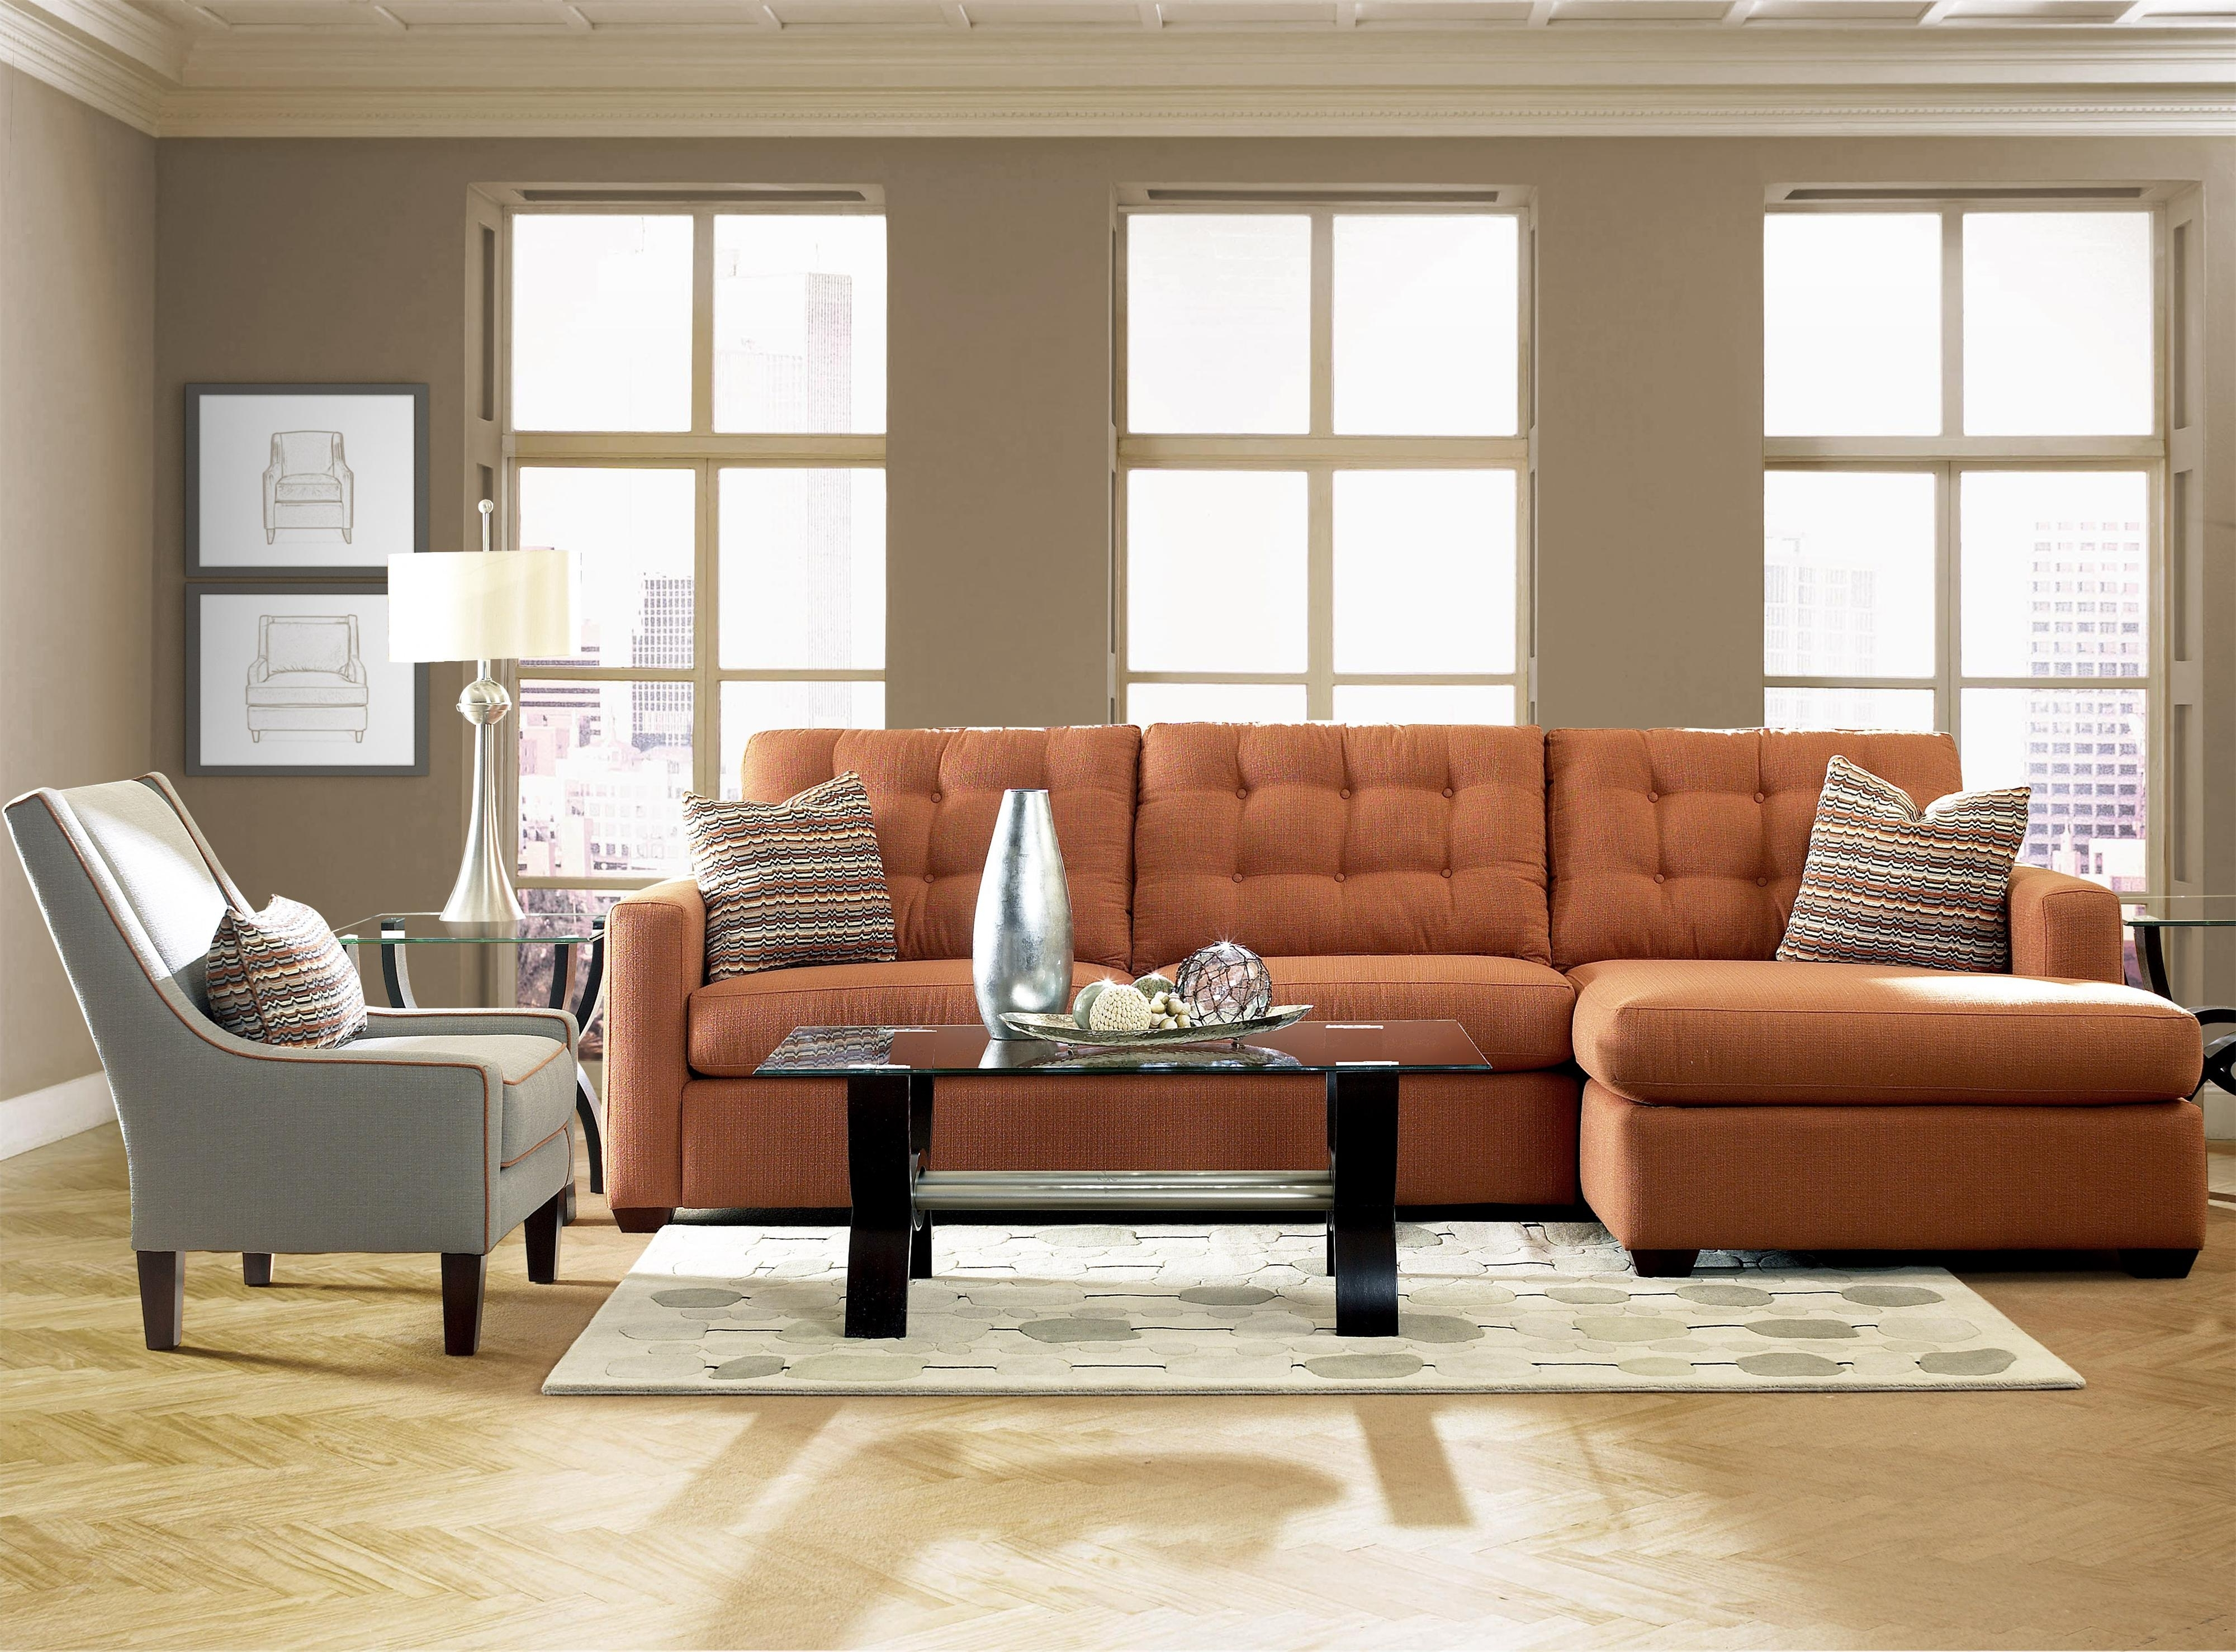 Living Room Chaise Lounge Chairs Custom Living Room Chaise Lounge Pertaining To 2017 Chaise Lounge Chairs For Small Spaces (View 6 of 15)